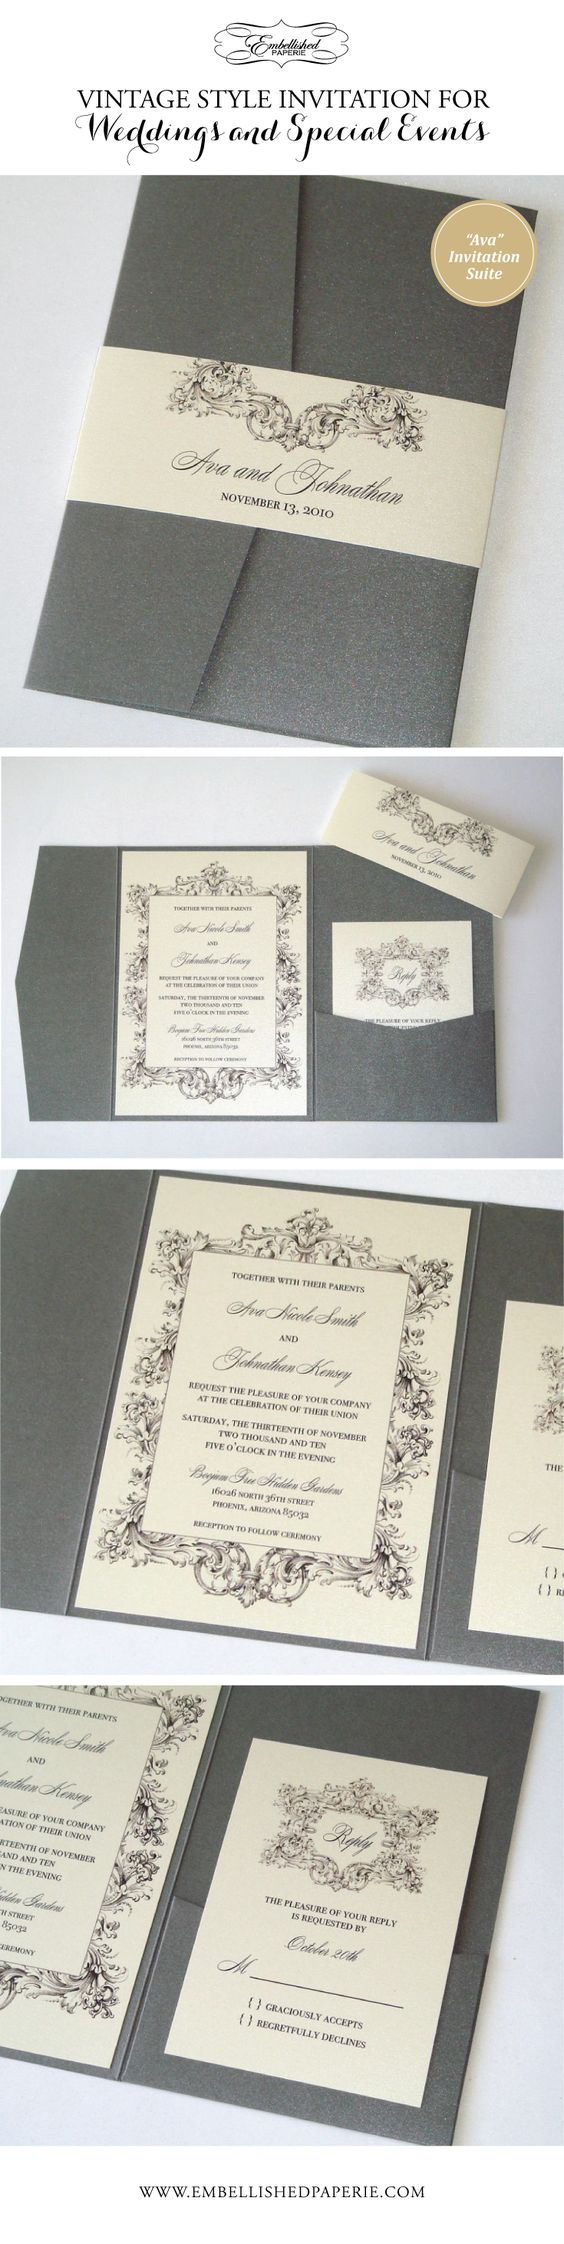 Vintage Wedding Invitation in Pewter Grey and Ivory.  Pewter Grey Metallic Pocket folder with Belly Band.  Invitation and RSVP Cards printed on Ivory metallic card stock.  Perfect Elegant Invitation for a Vintage Wedding or Event.  www.embellishedpaperie.com